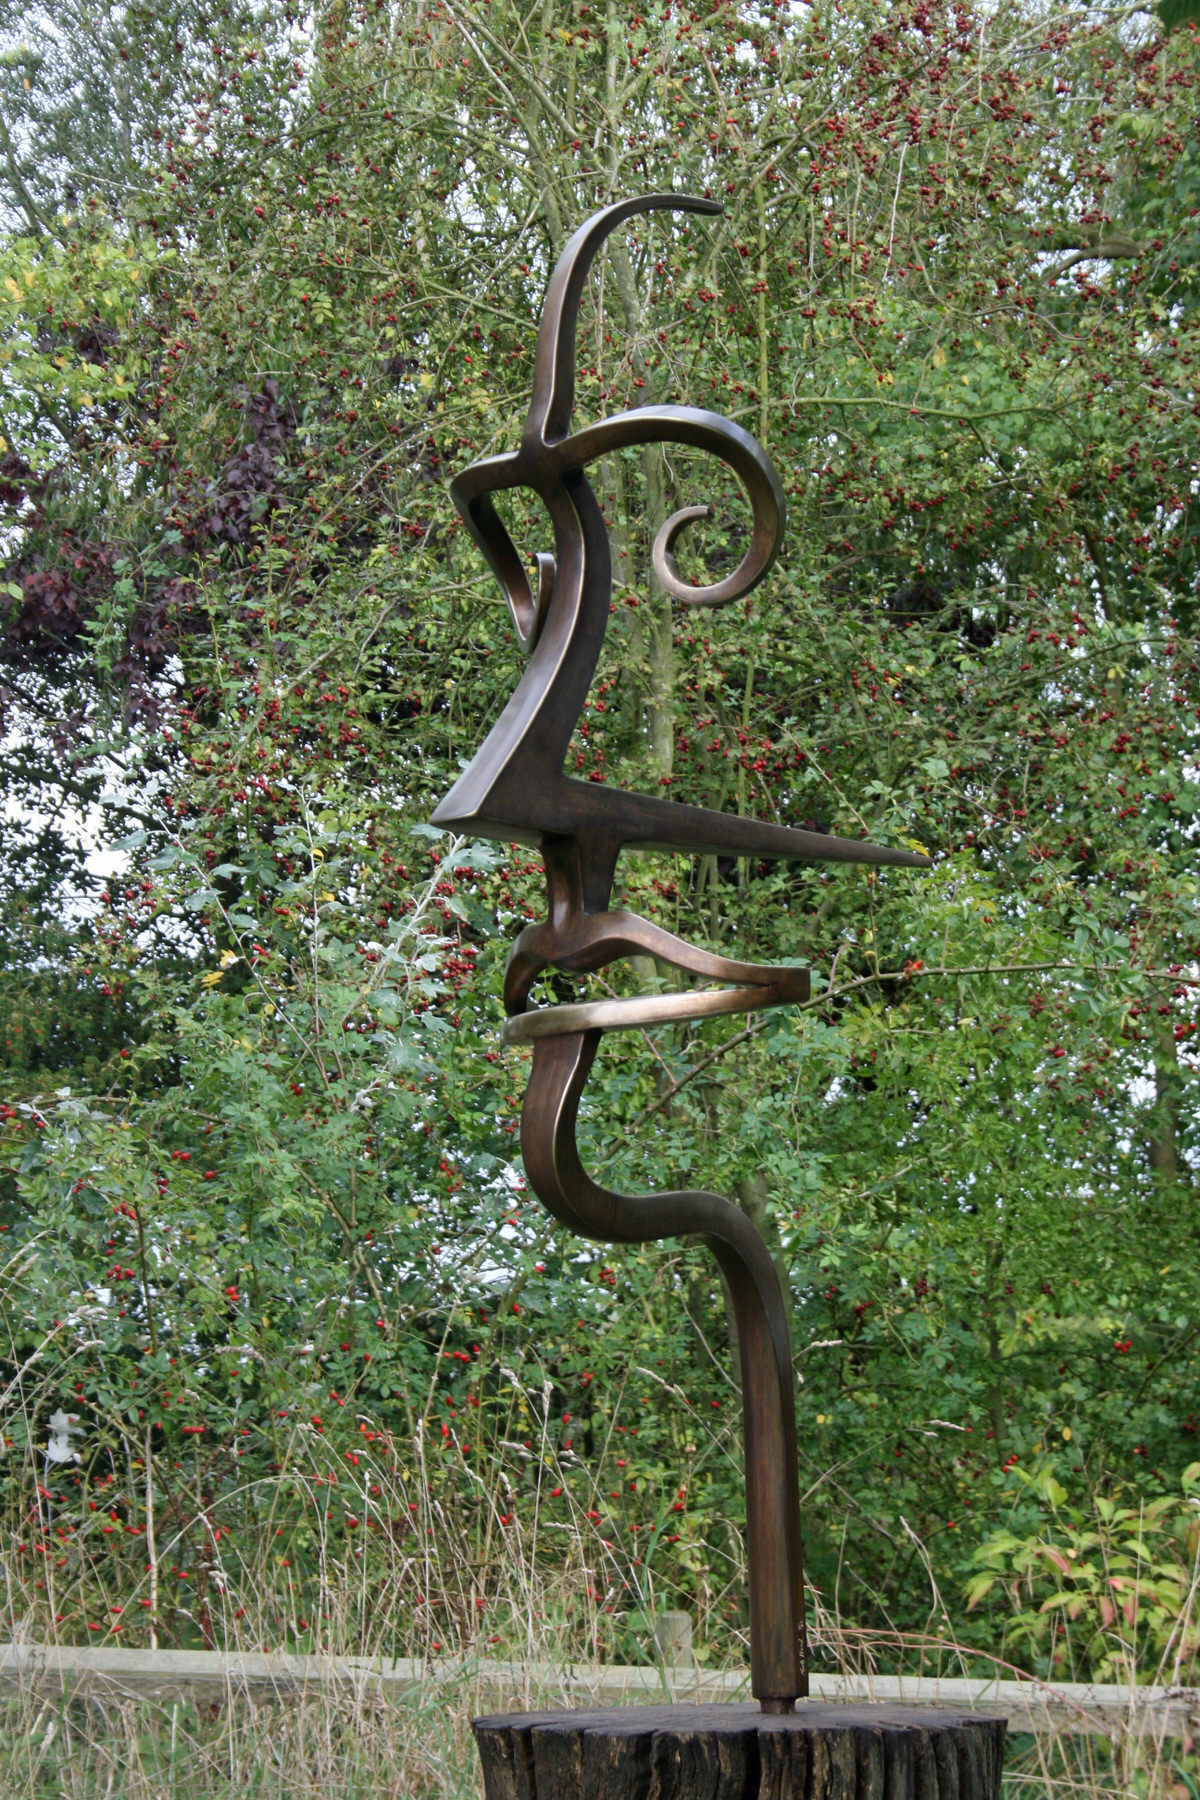 4MAN Sculpture bronze contemporary British sculpture figurative sculpture industrial inspired public sculpture  East Coast Sculpture by Mark Reed